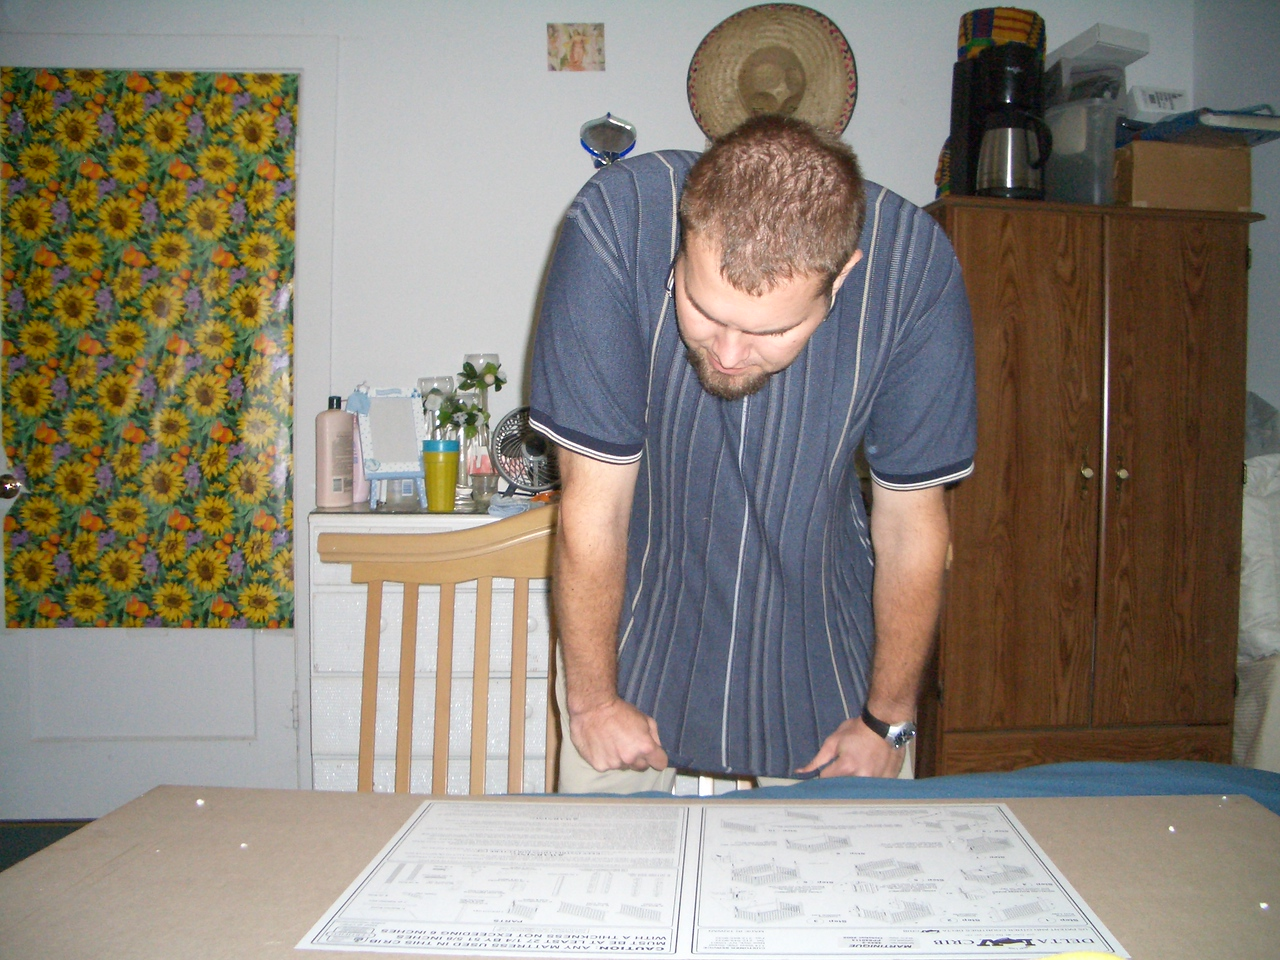 Daddy reading the directions on how to set up the crib. 10/4